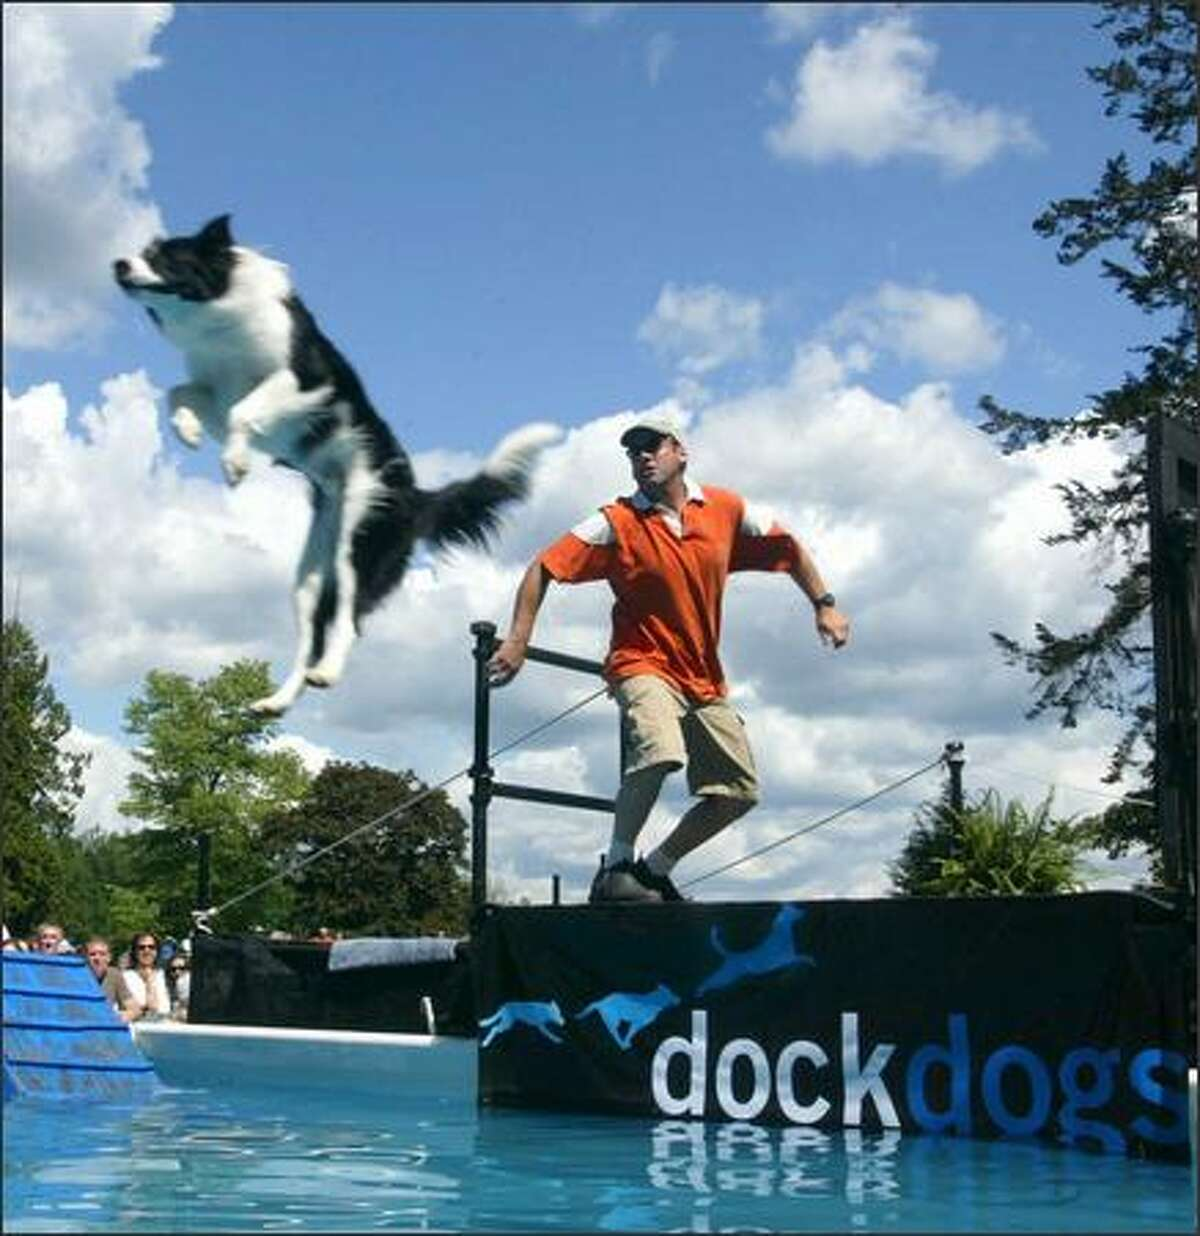 Gabe, a border collie from Dayton, Nev., flies through the air on command from his owner, Todd Bobula, during the